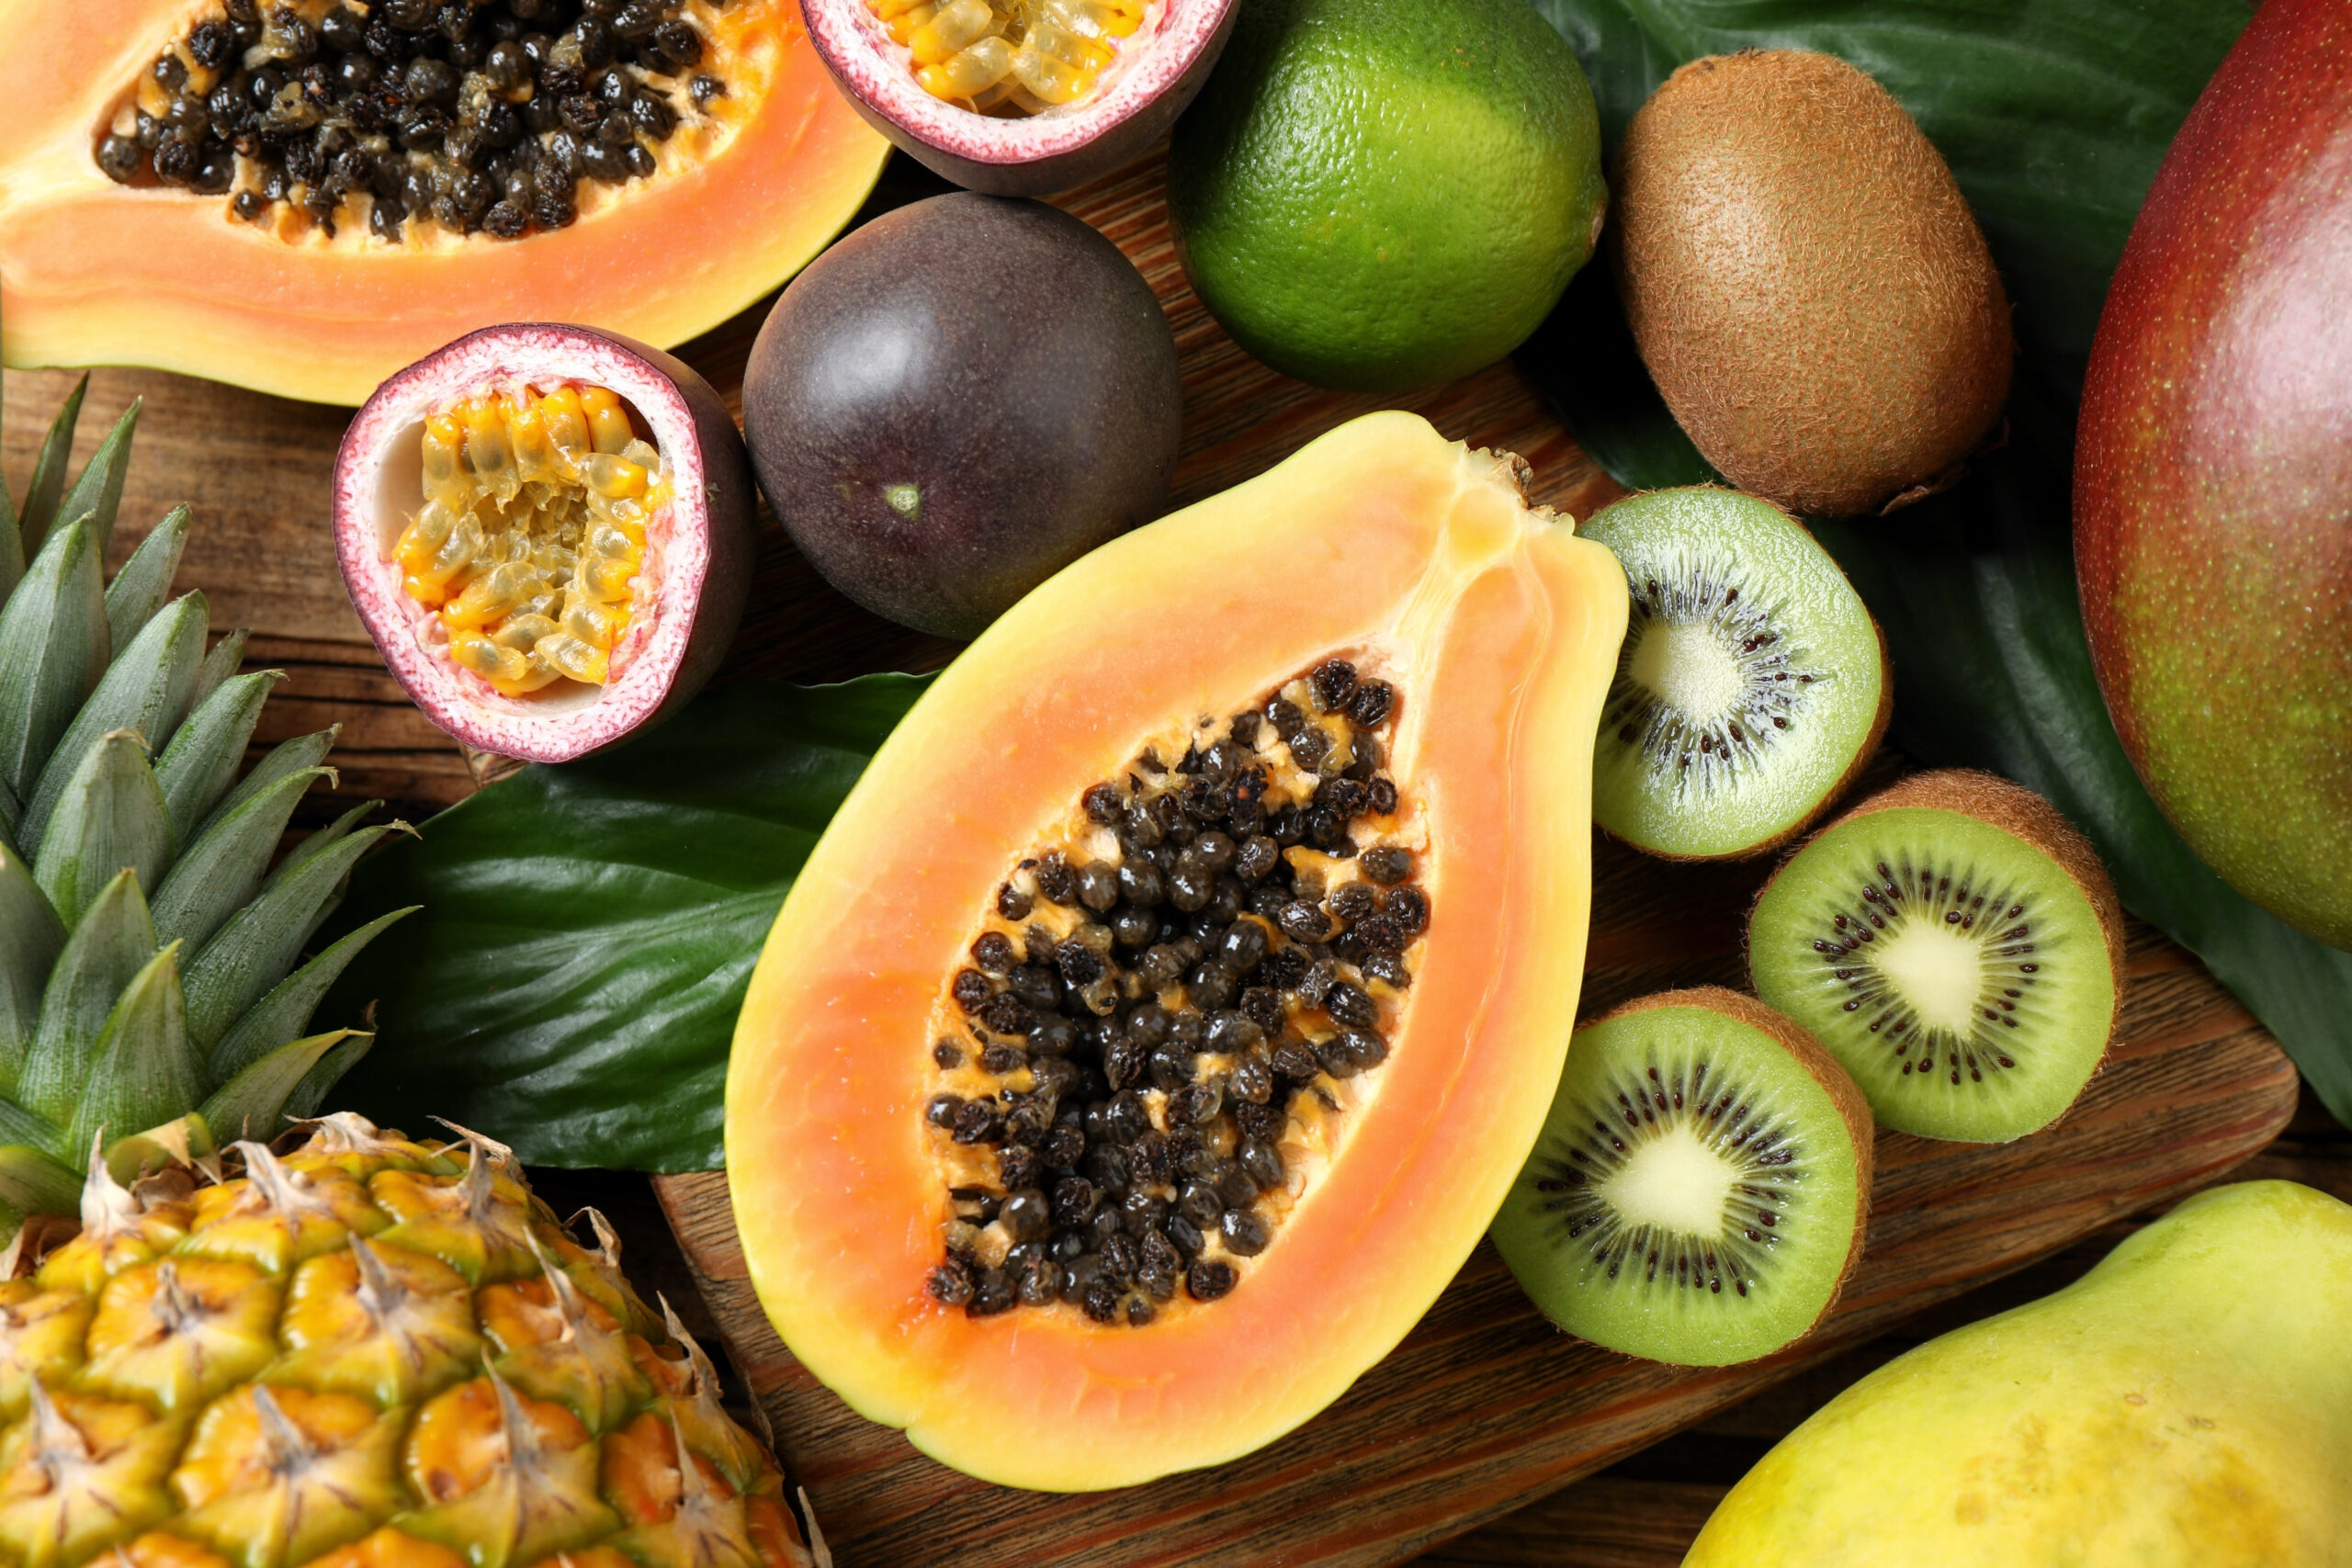 Fresh ripe papaya and other fruits on wooden table, flat lay